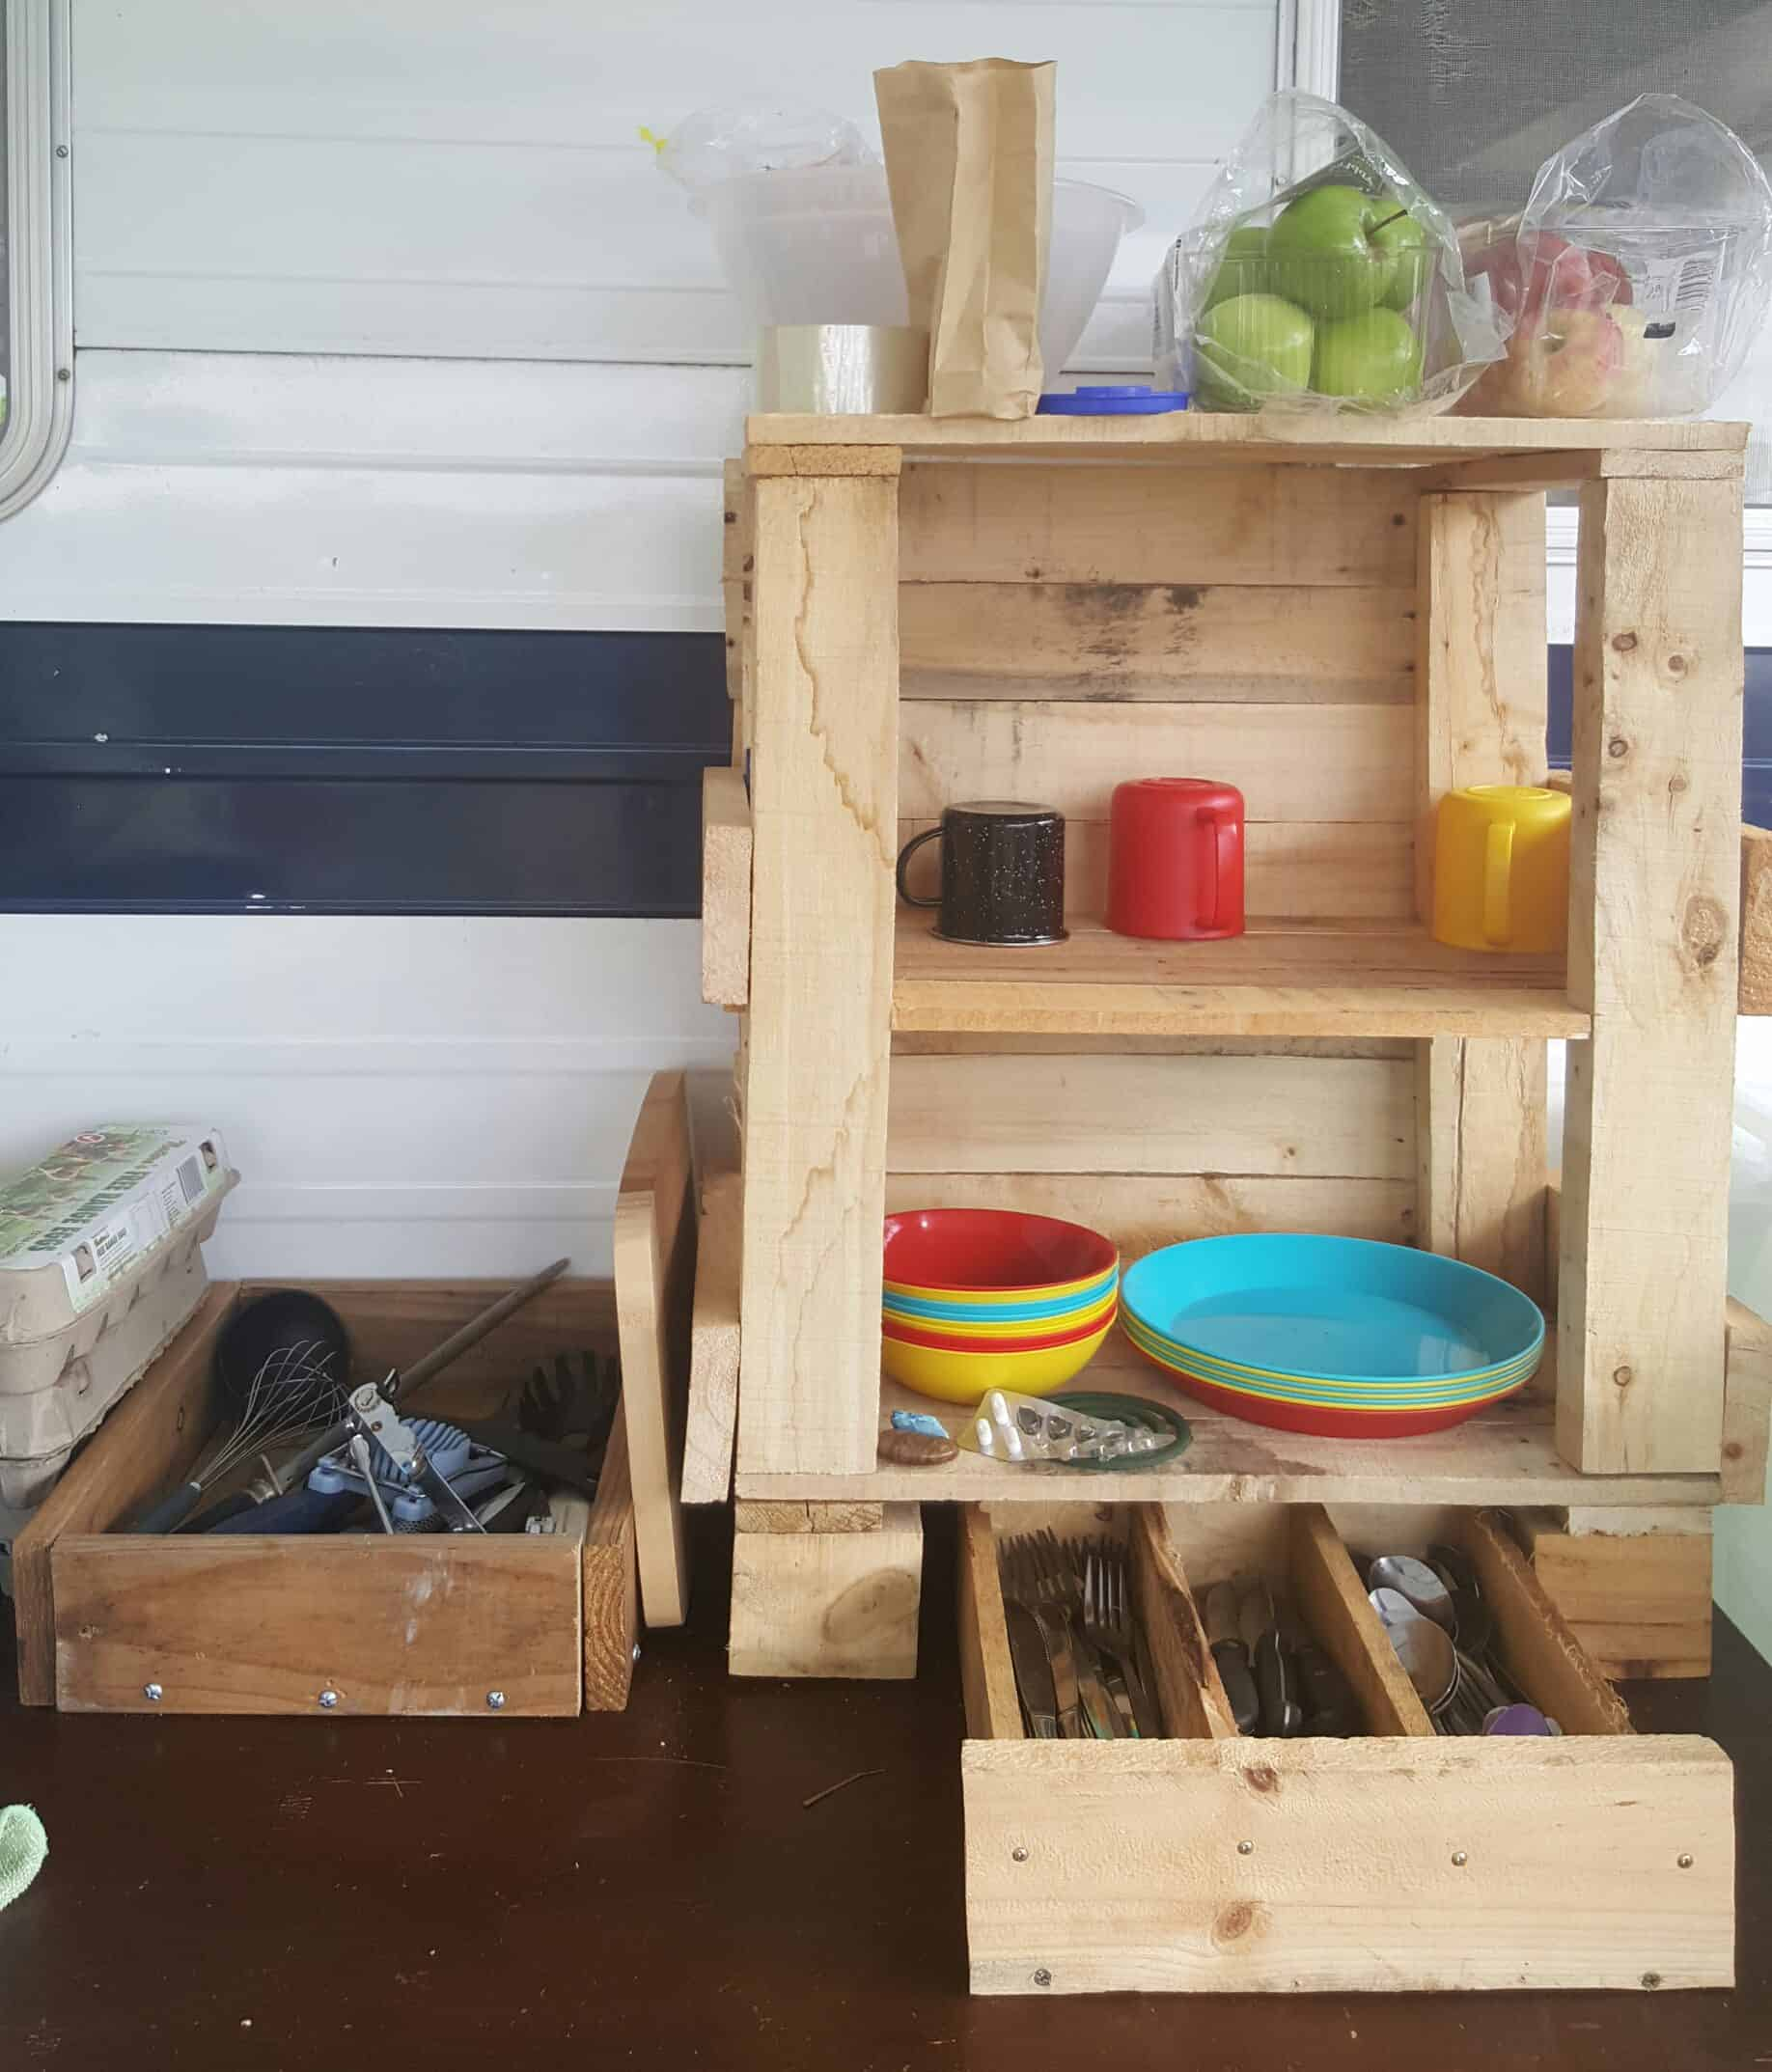 Creatively Improvised Pallet Camp Kitchen Tidy • 1001 Pallets